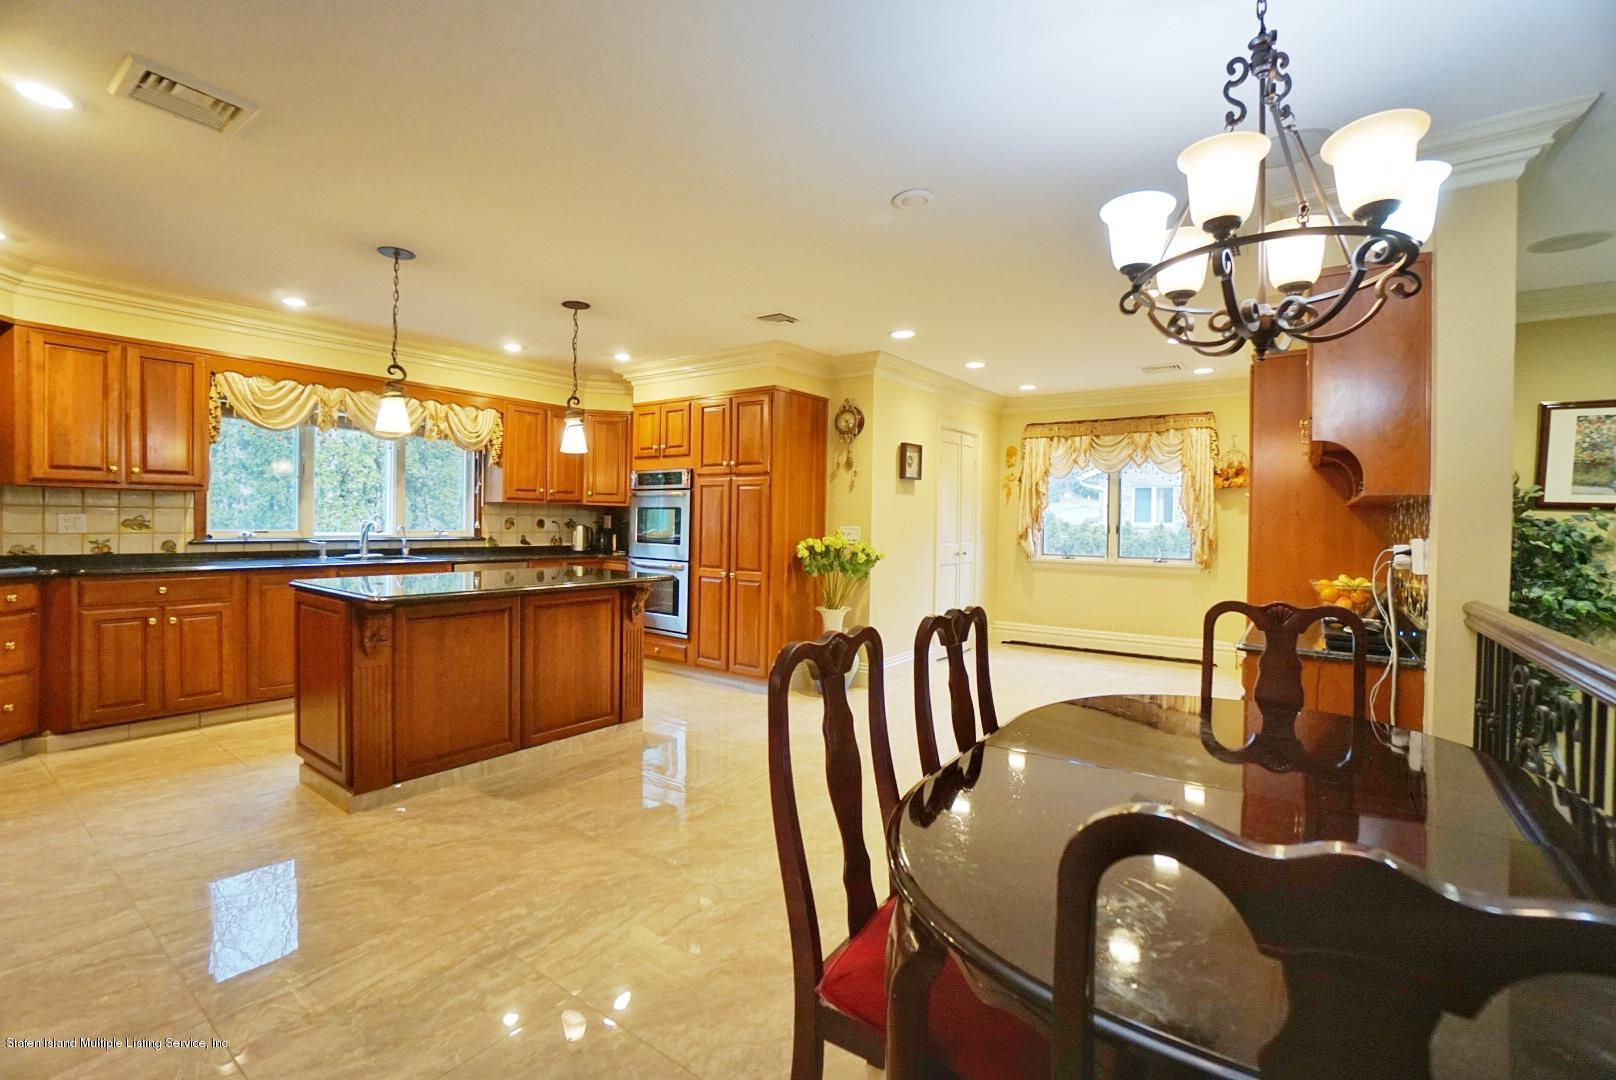 Single Family - Detached 1 Buttonwood Road   Staten Island, NY 10304, MLS-1135318-17